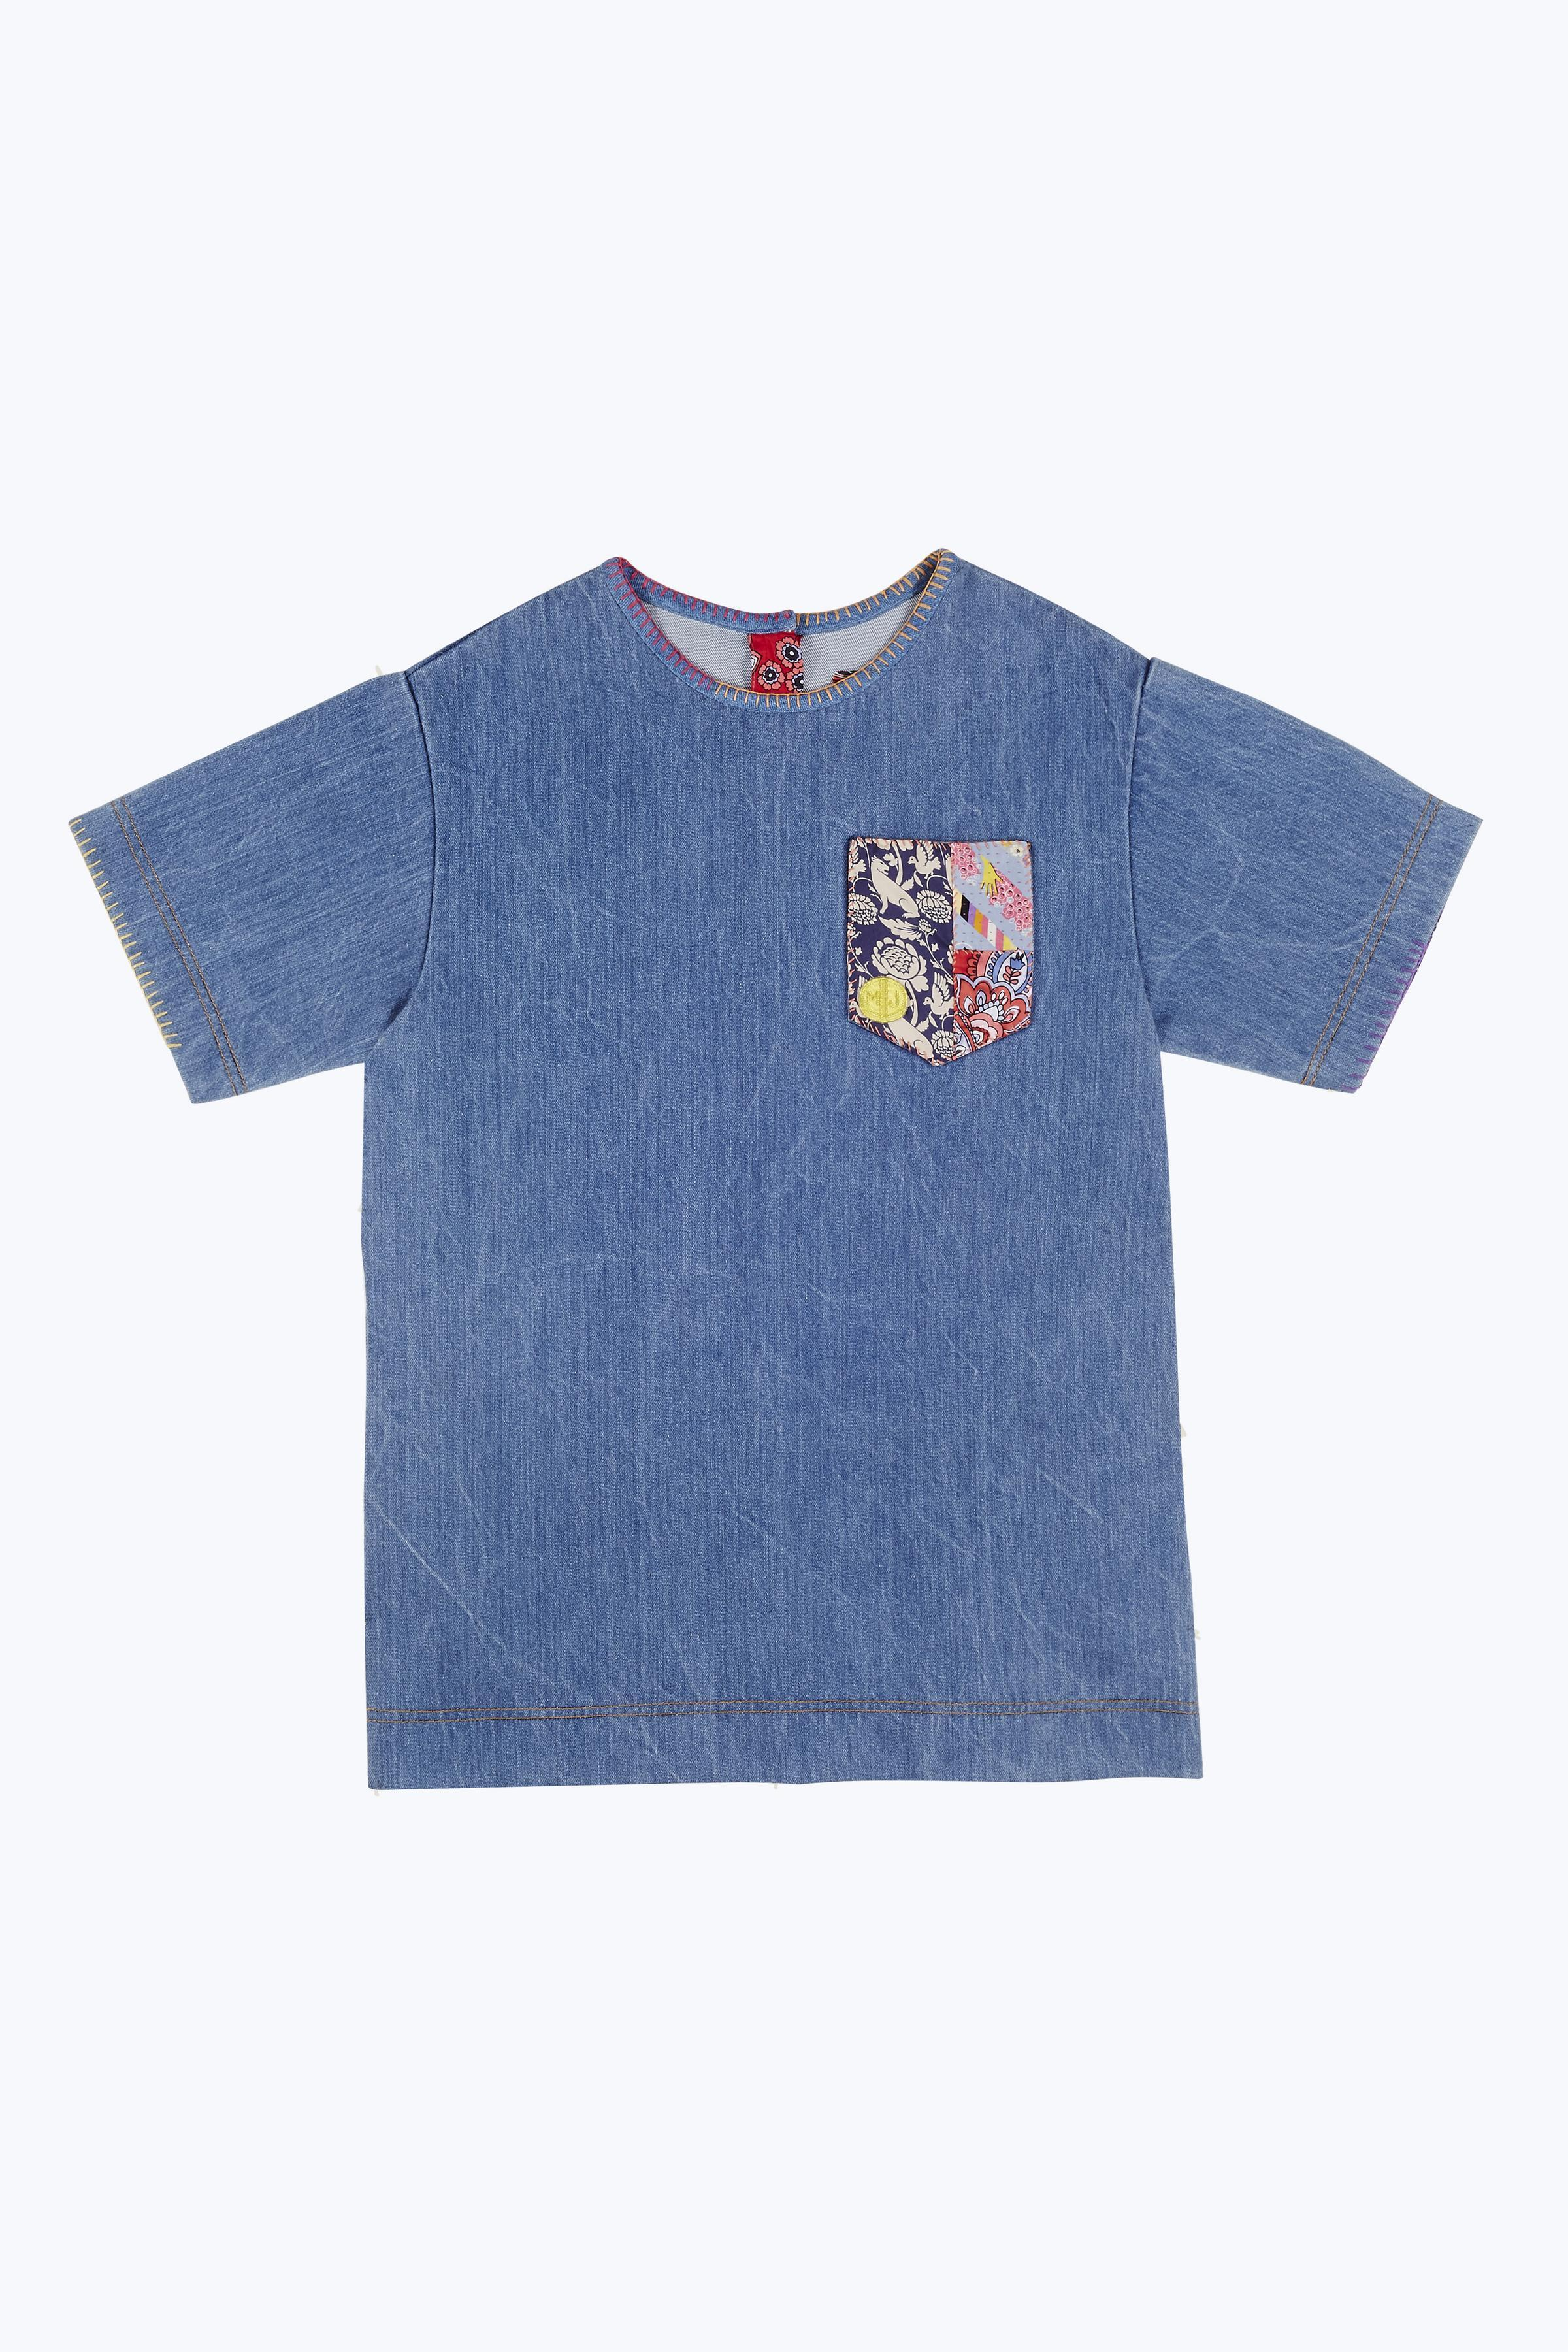 ★限定価格★MARC JACOBS/Denim T-Shirt Dress With Embroidery